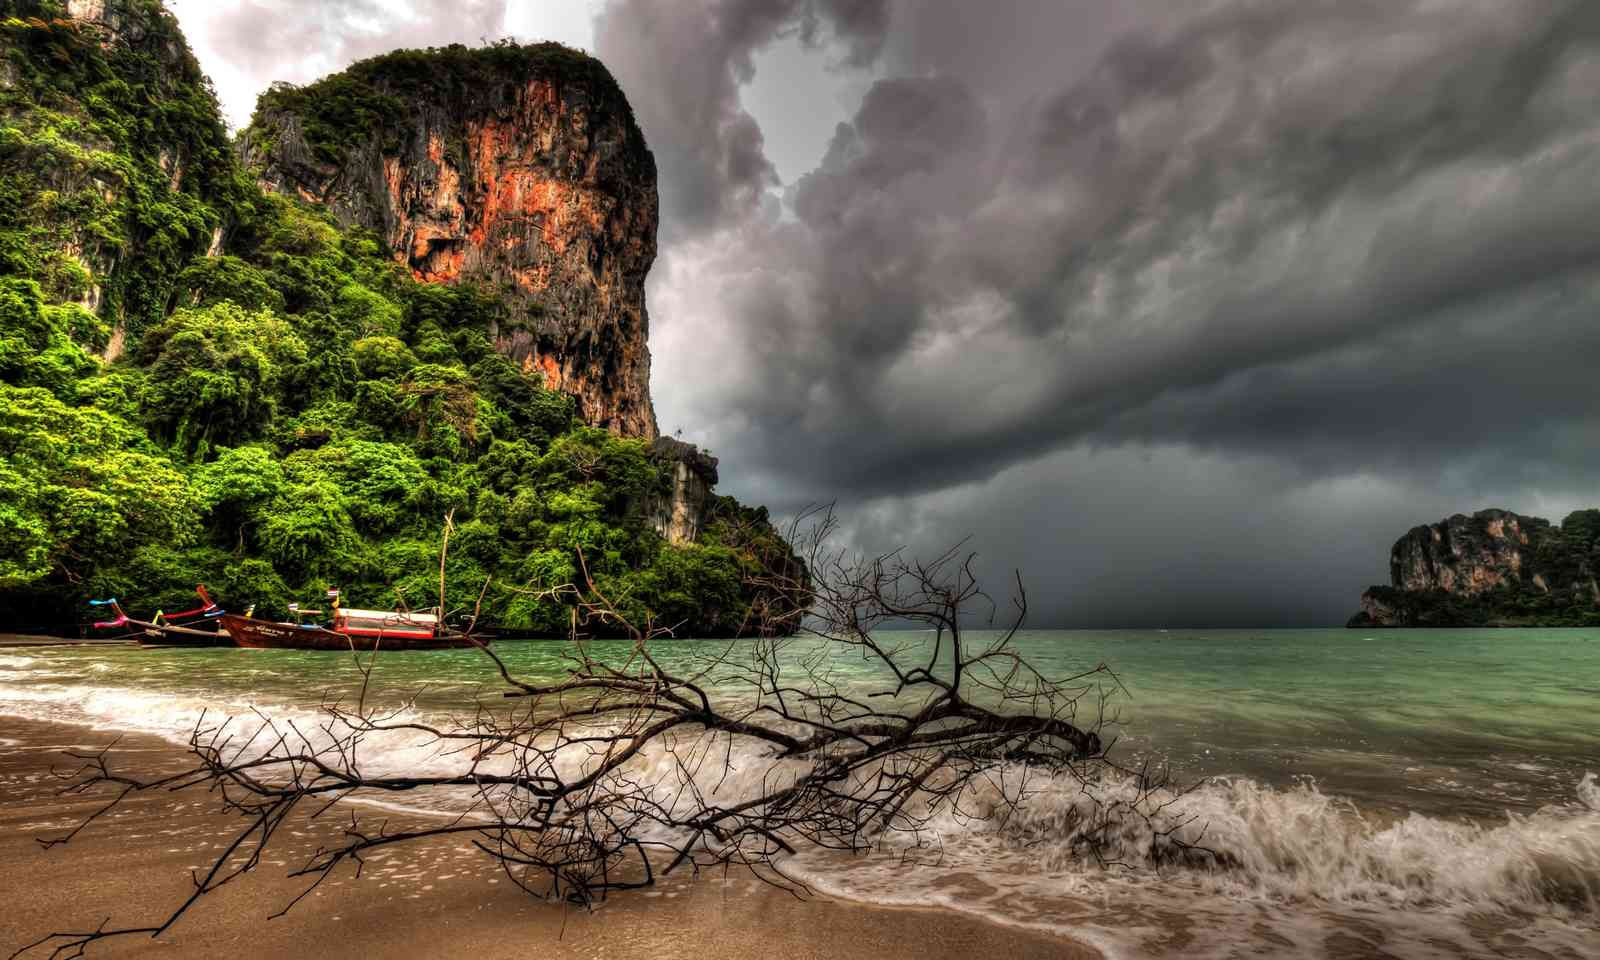 Storm clouds over Thailand (Dreamstime)